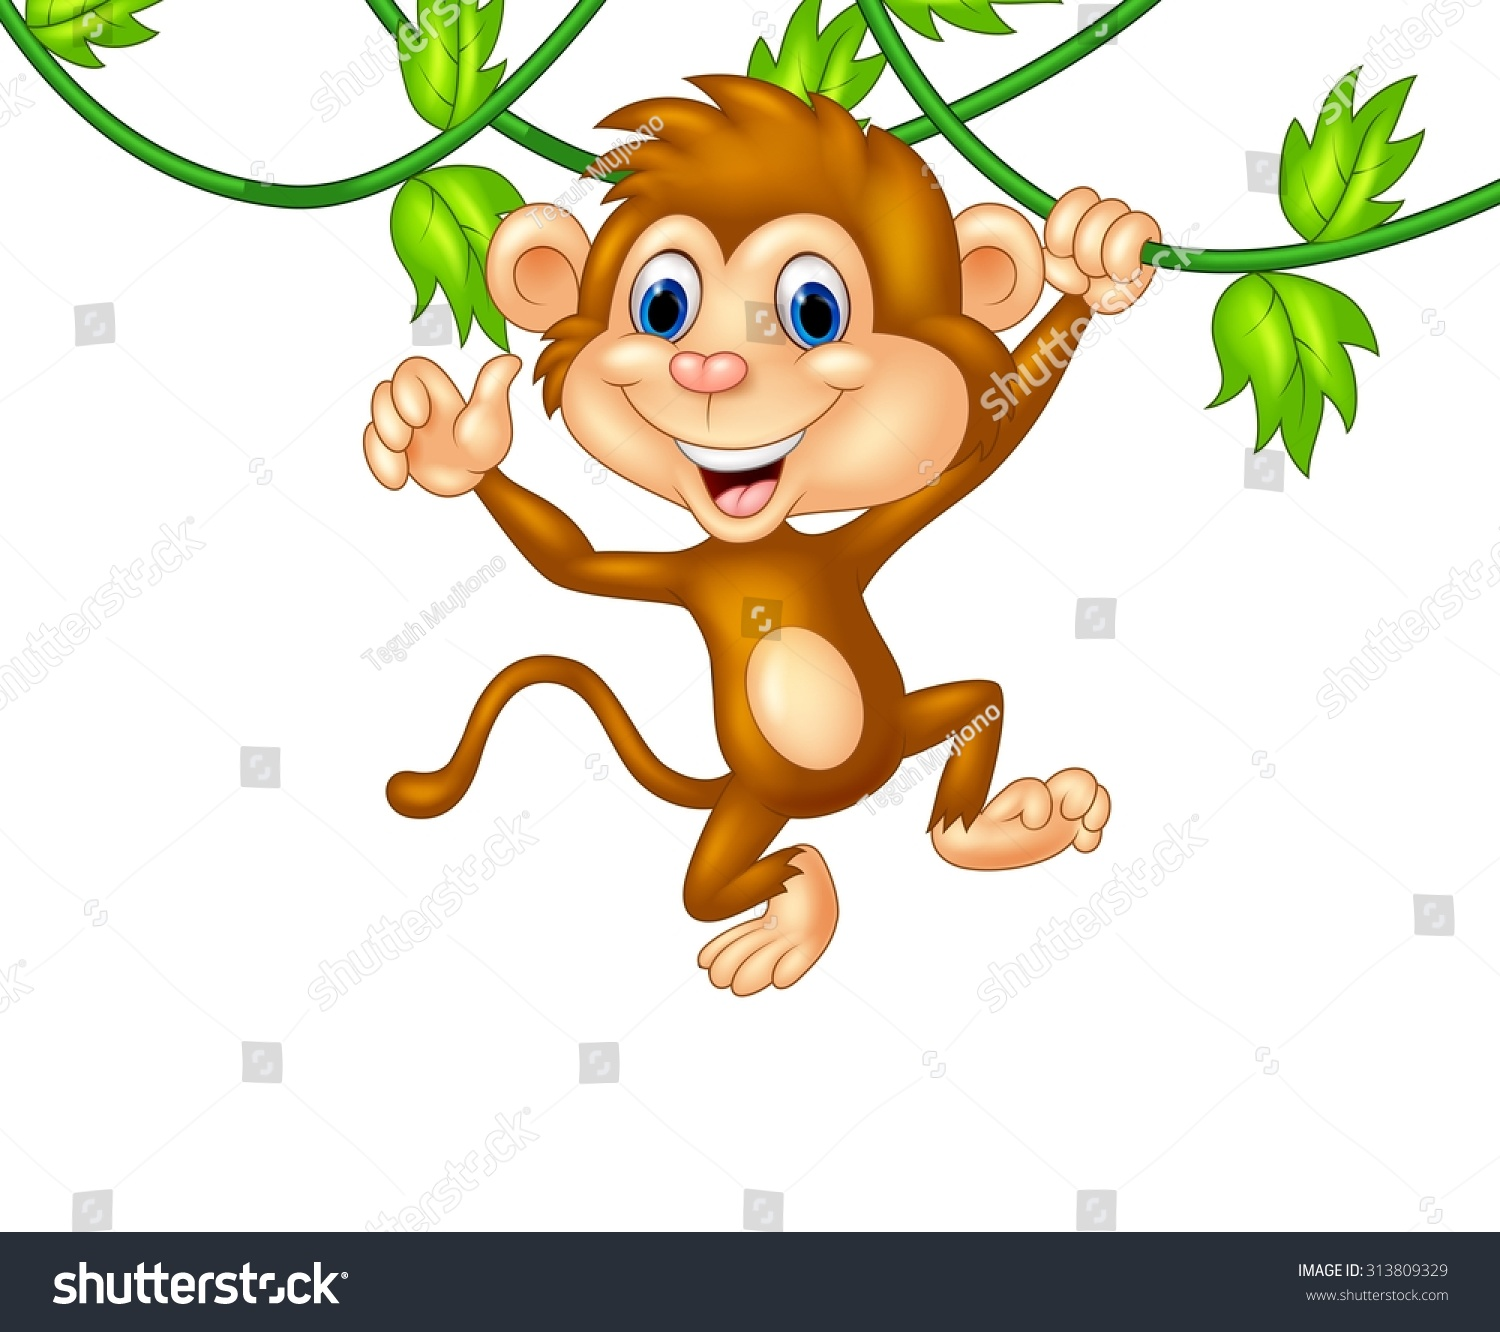 cartoon monkey hanging giving thumbs up stock vector 313809329